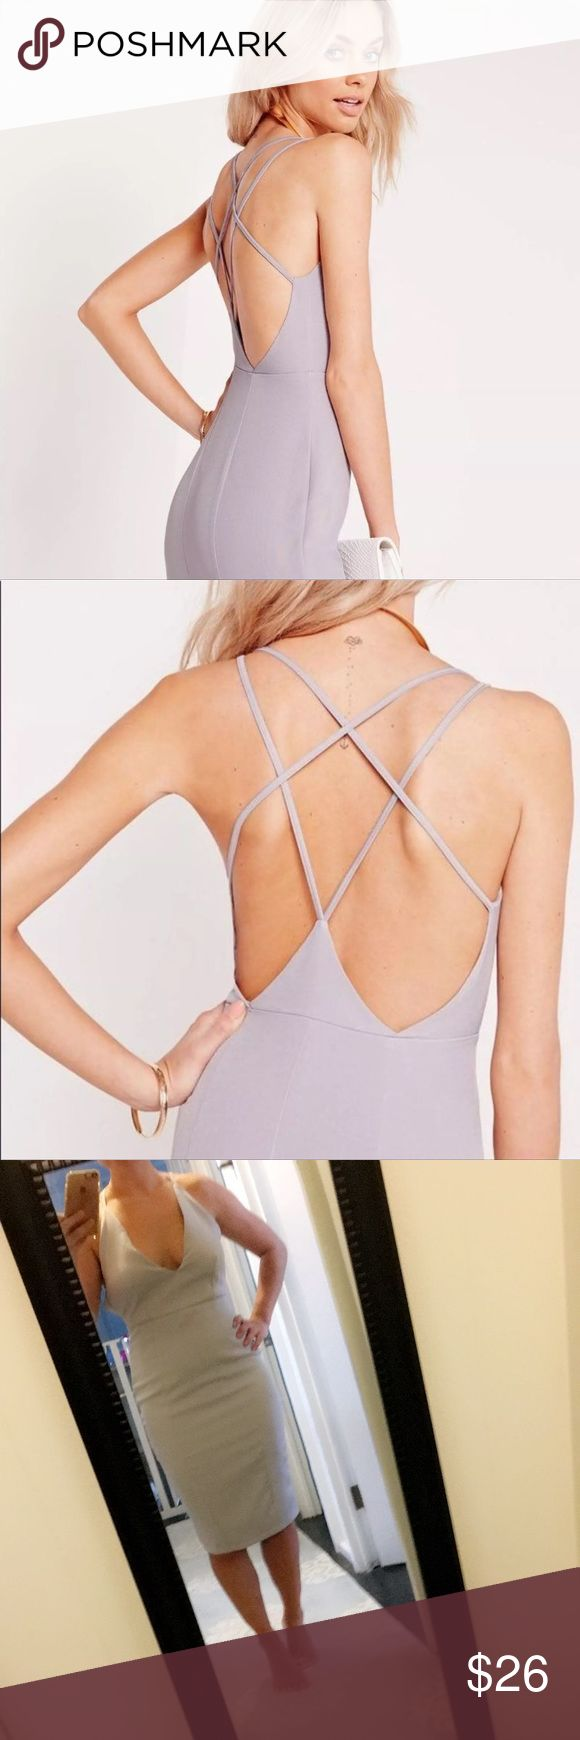 Missguided Strappy Lilac Midi Dress This dress is so adorable! The color is sort of a taupe/light blue/lavender color, but considered lilac. Cami straps, midi length, and has a split! Missguided Dresses Midi